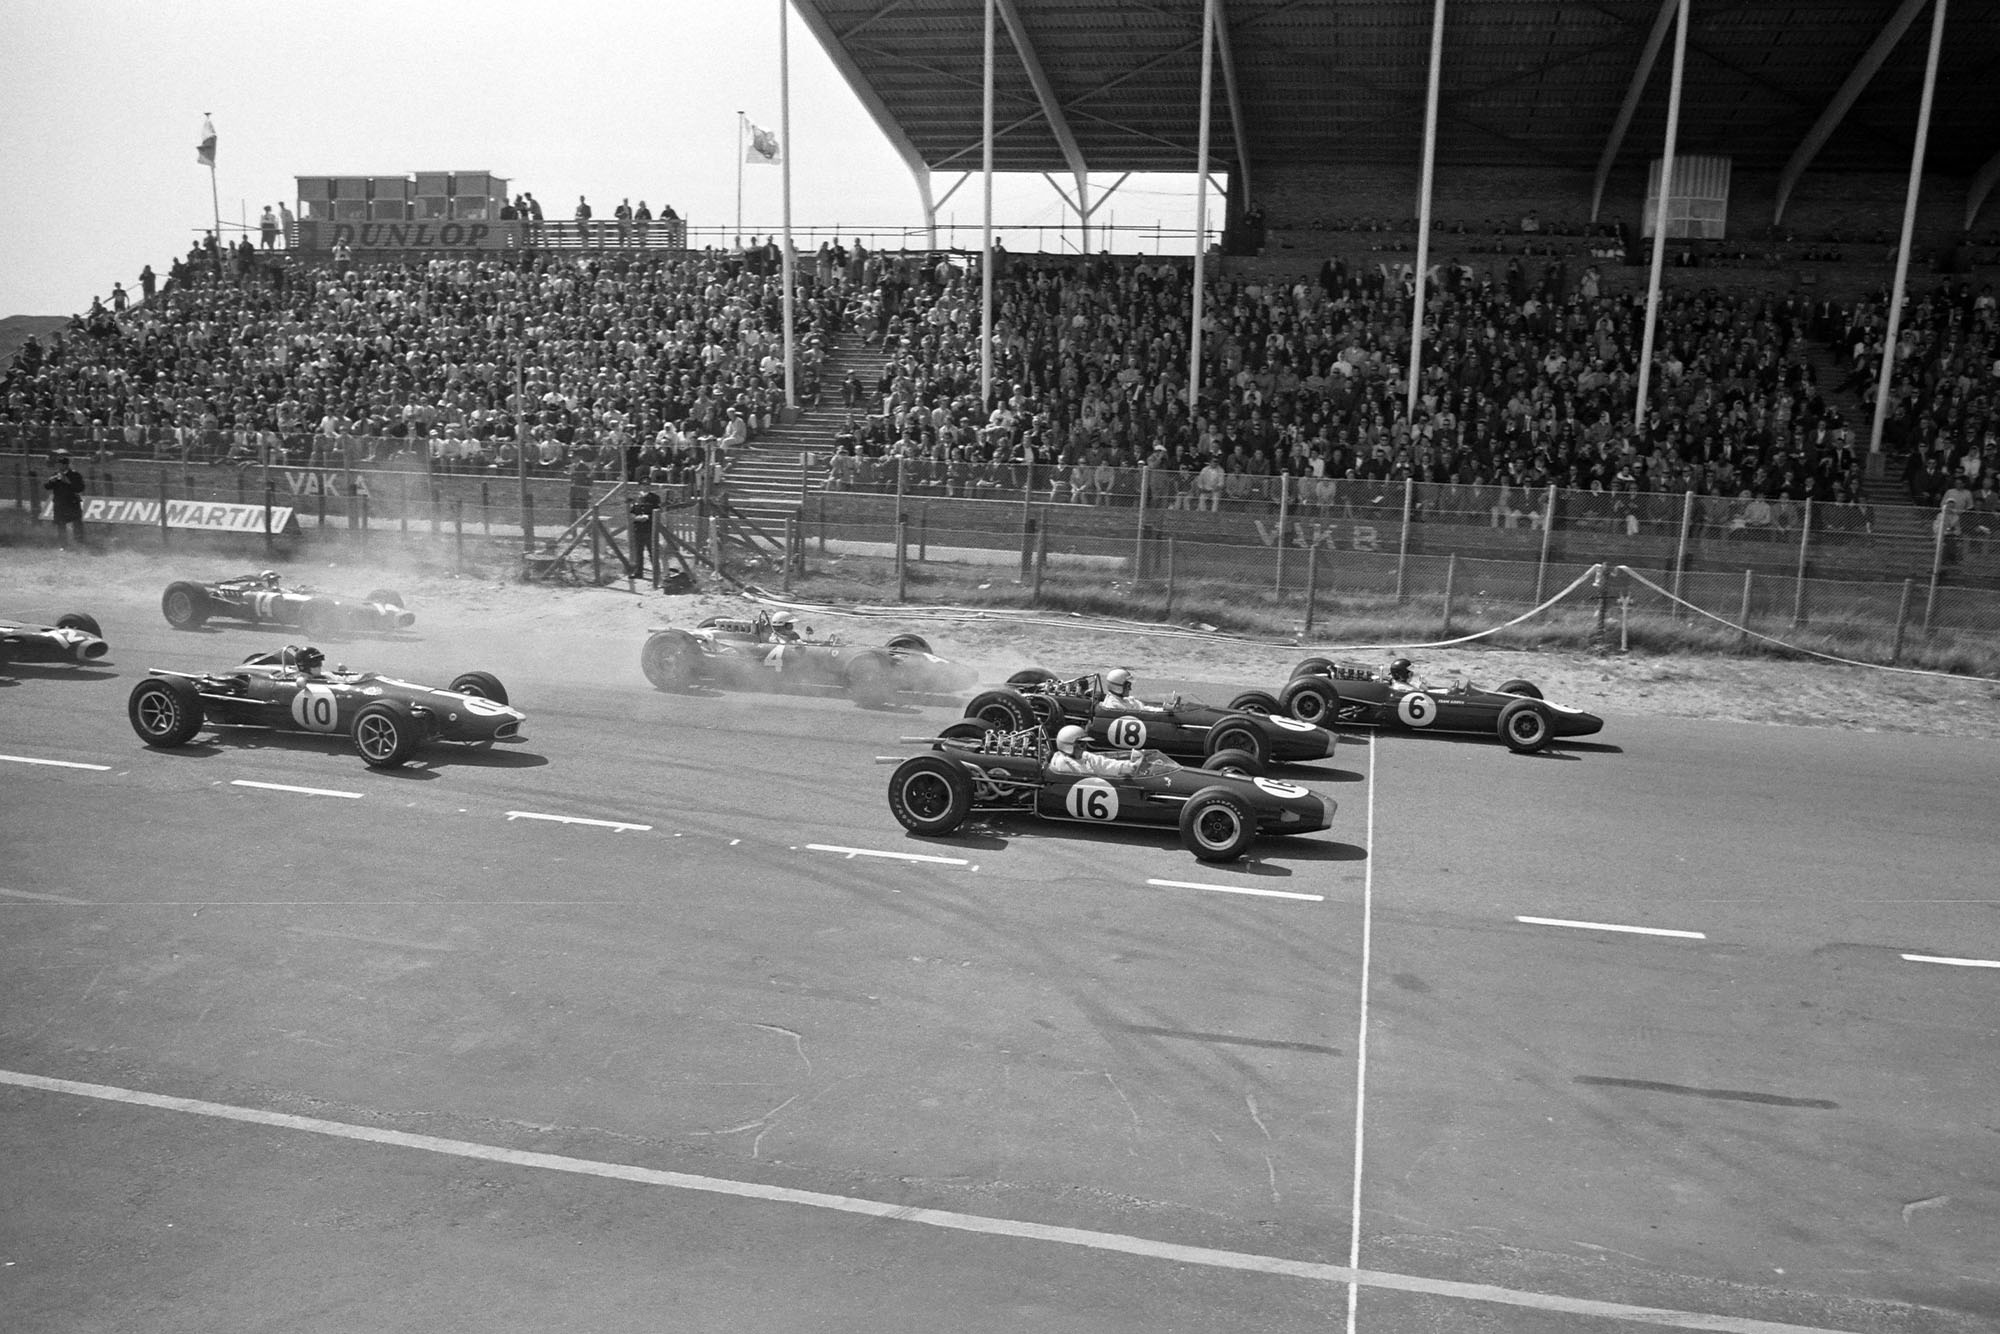 Jim Clark, Lotus 33 Climax leads Denny Hulme, Brabham BT20 Repco and Jack Brabham, Brabham BT19 Repco at the start of the race.